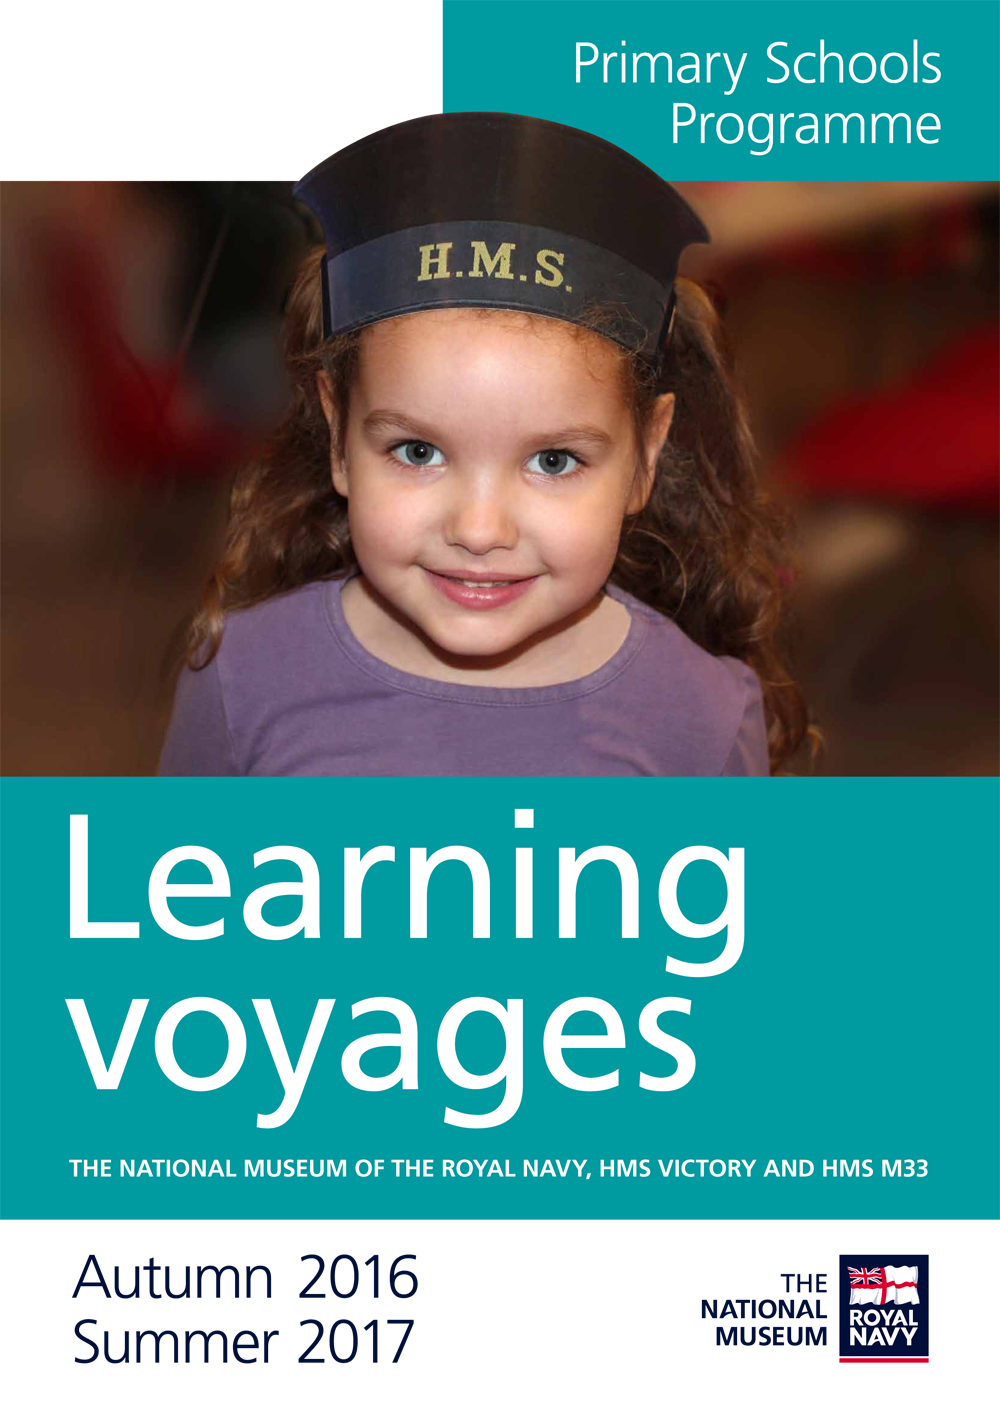 NMRN Primary Learning Voyages 2016 17